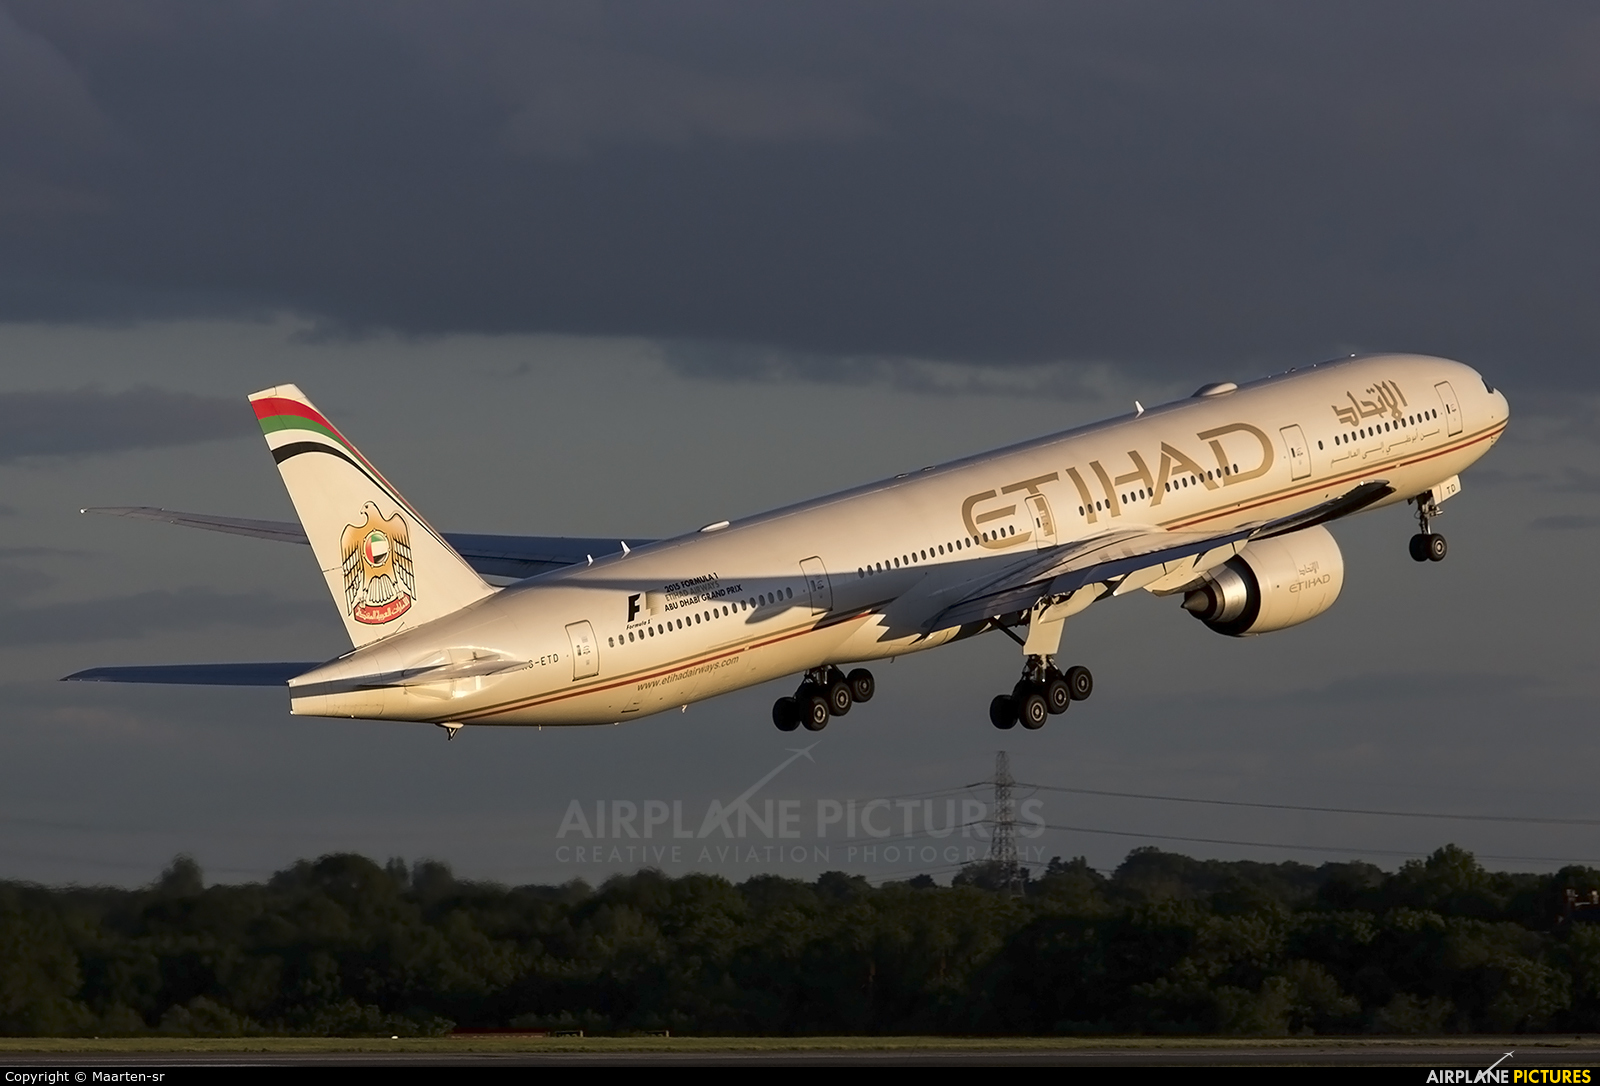 Etihad Airways A6-ETD aircraft at Manchester